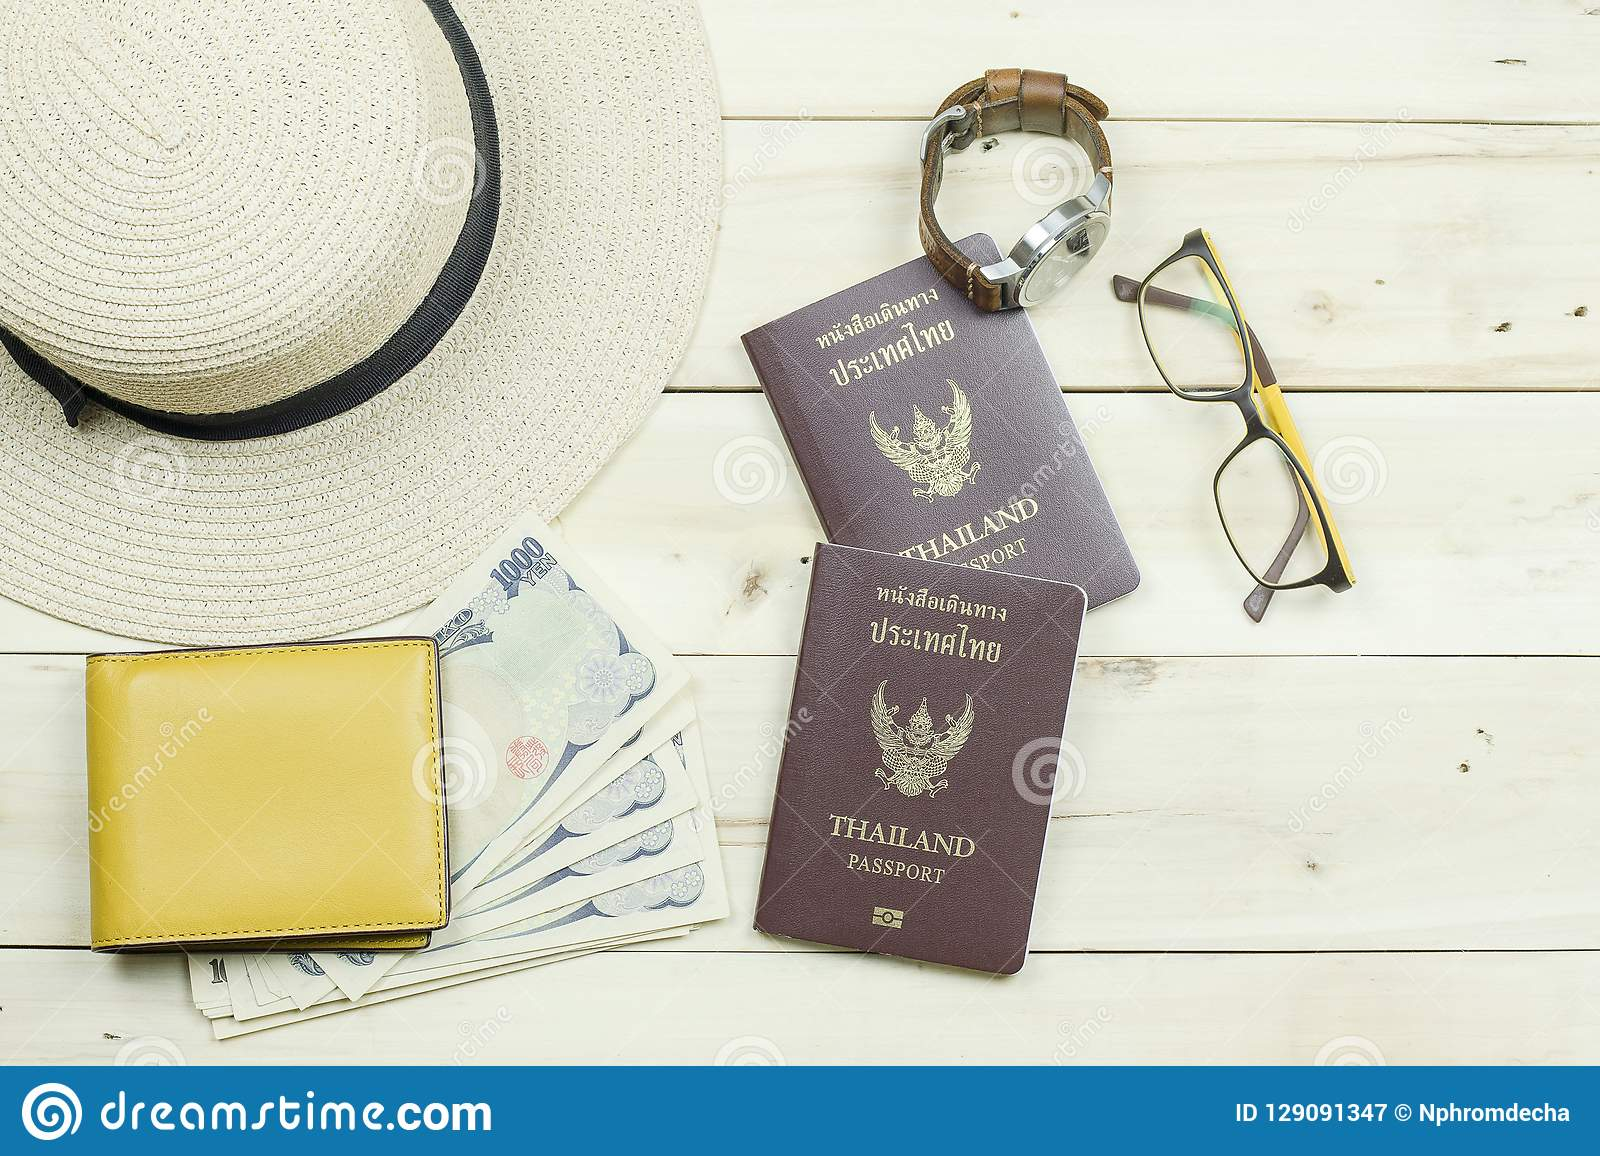 Thailand passport, hat, glasses, watch, yellow wallet and cash.